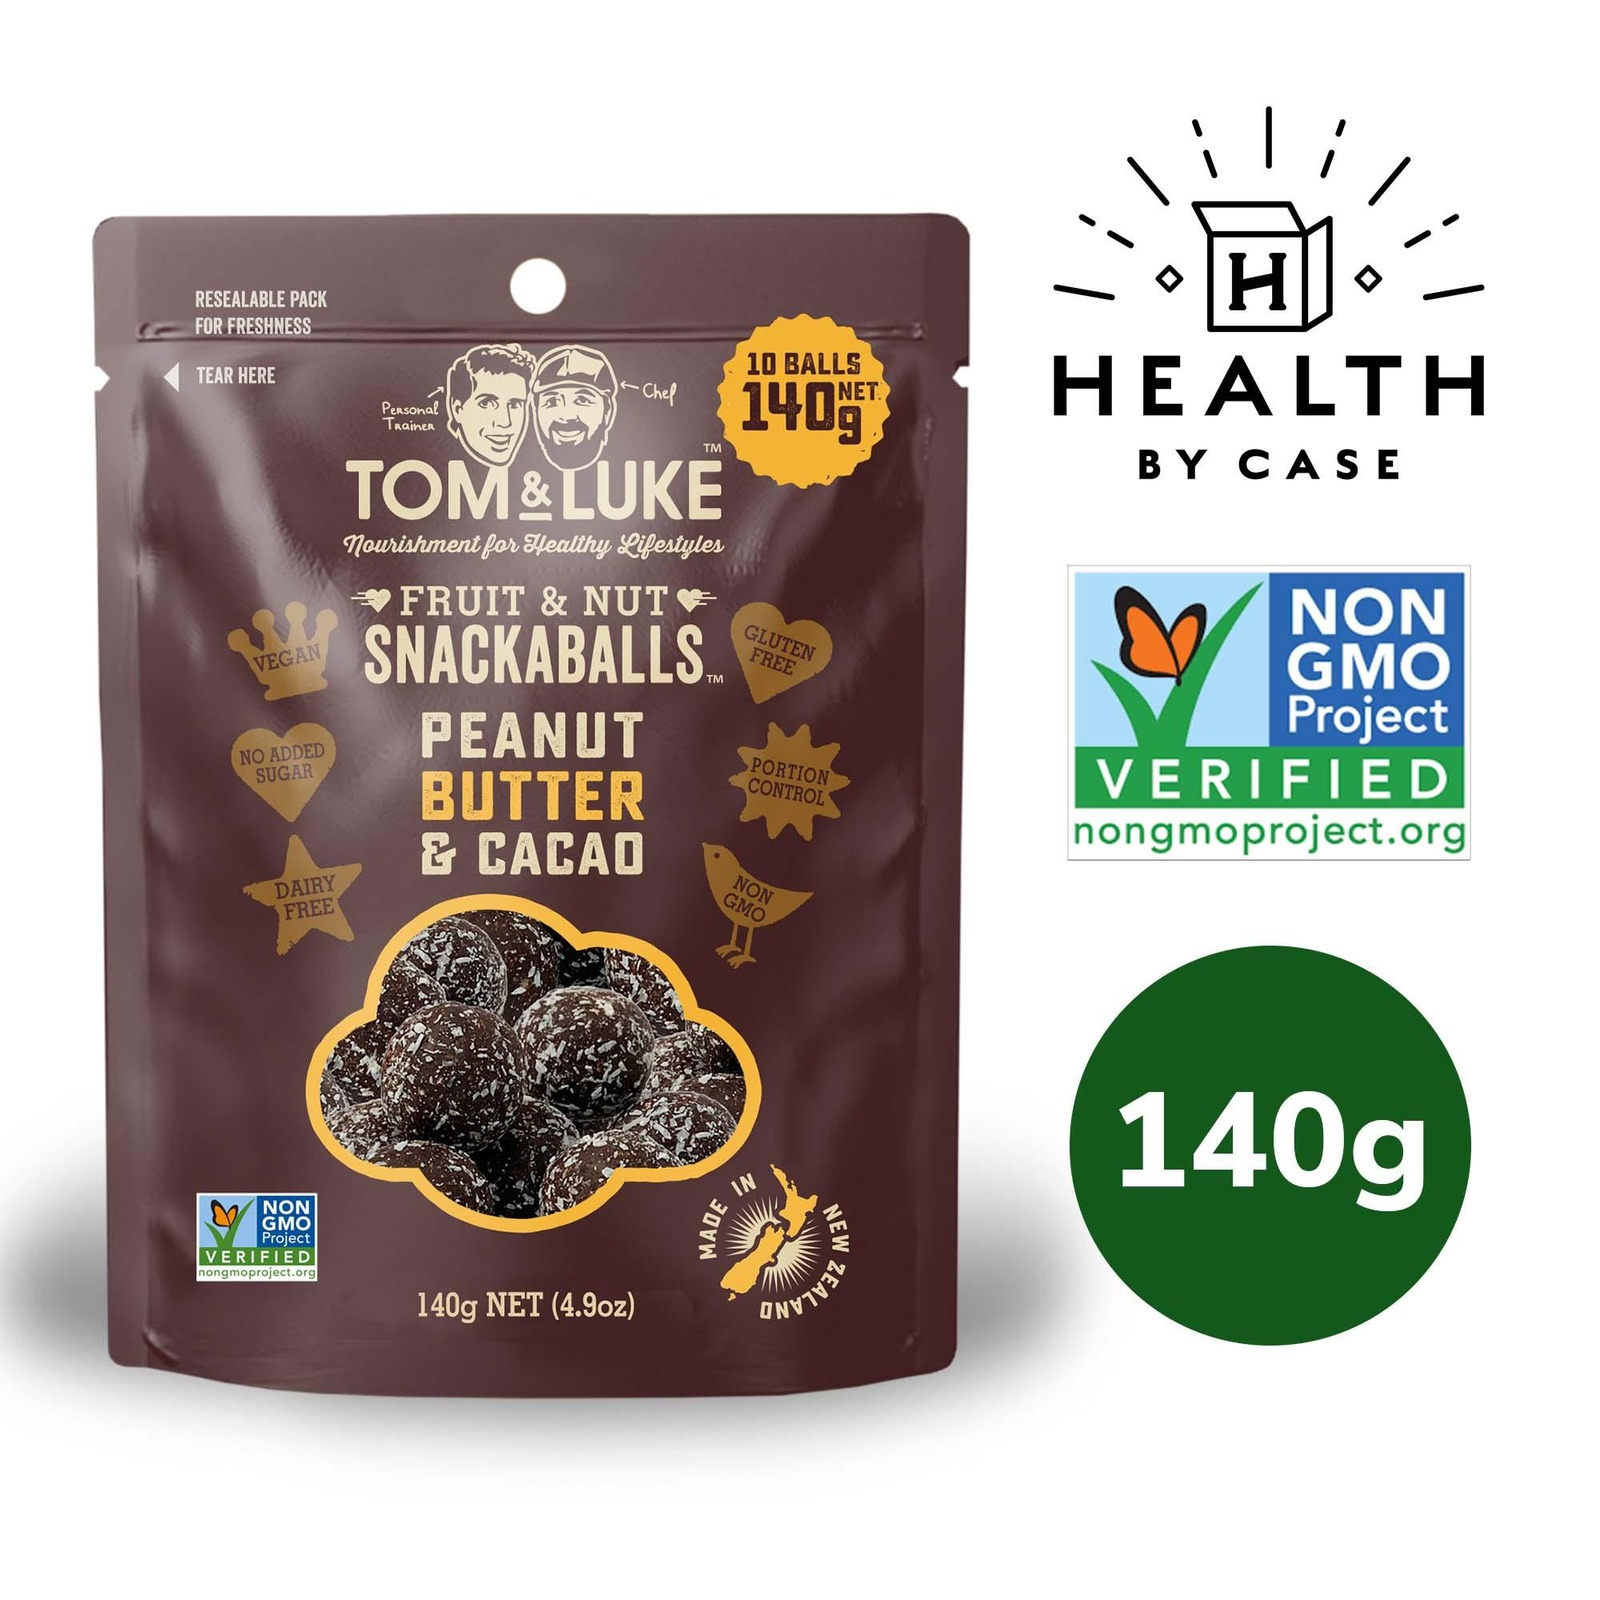 Tom & Luke Snackaball - Peanut Butter and Cacao